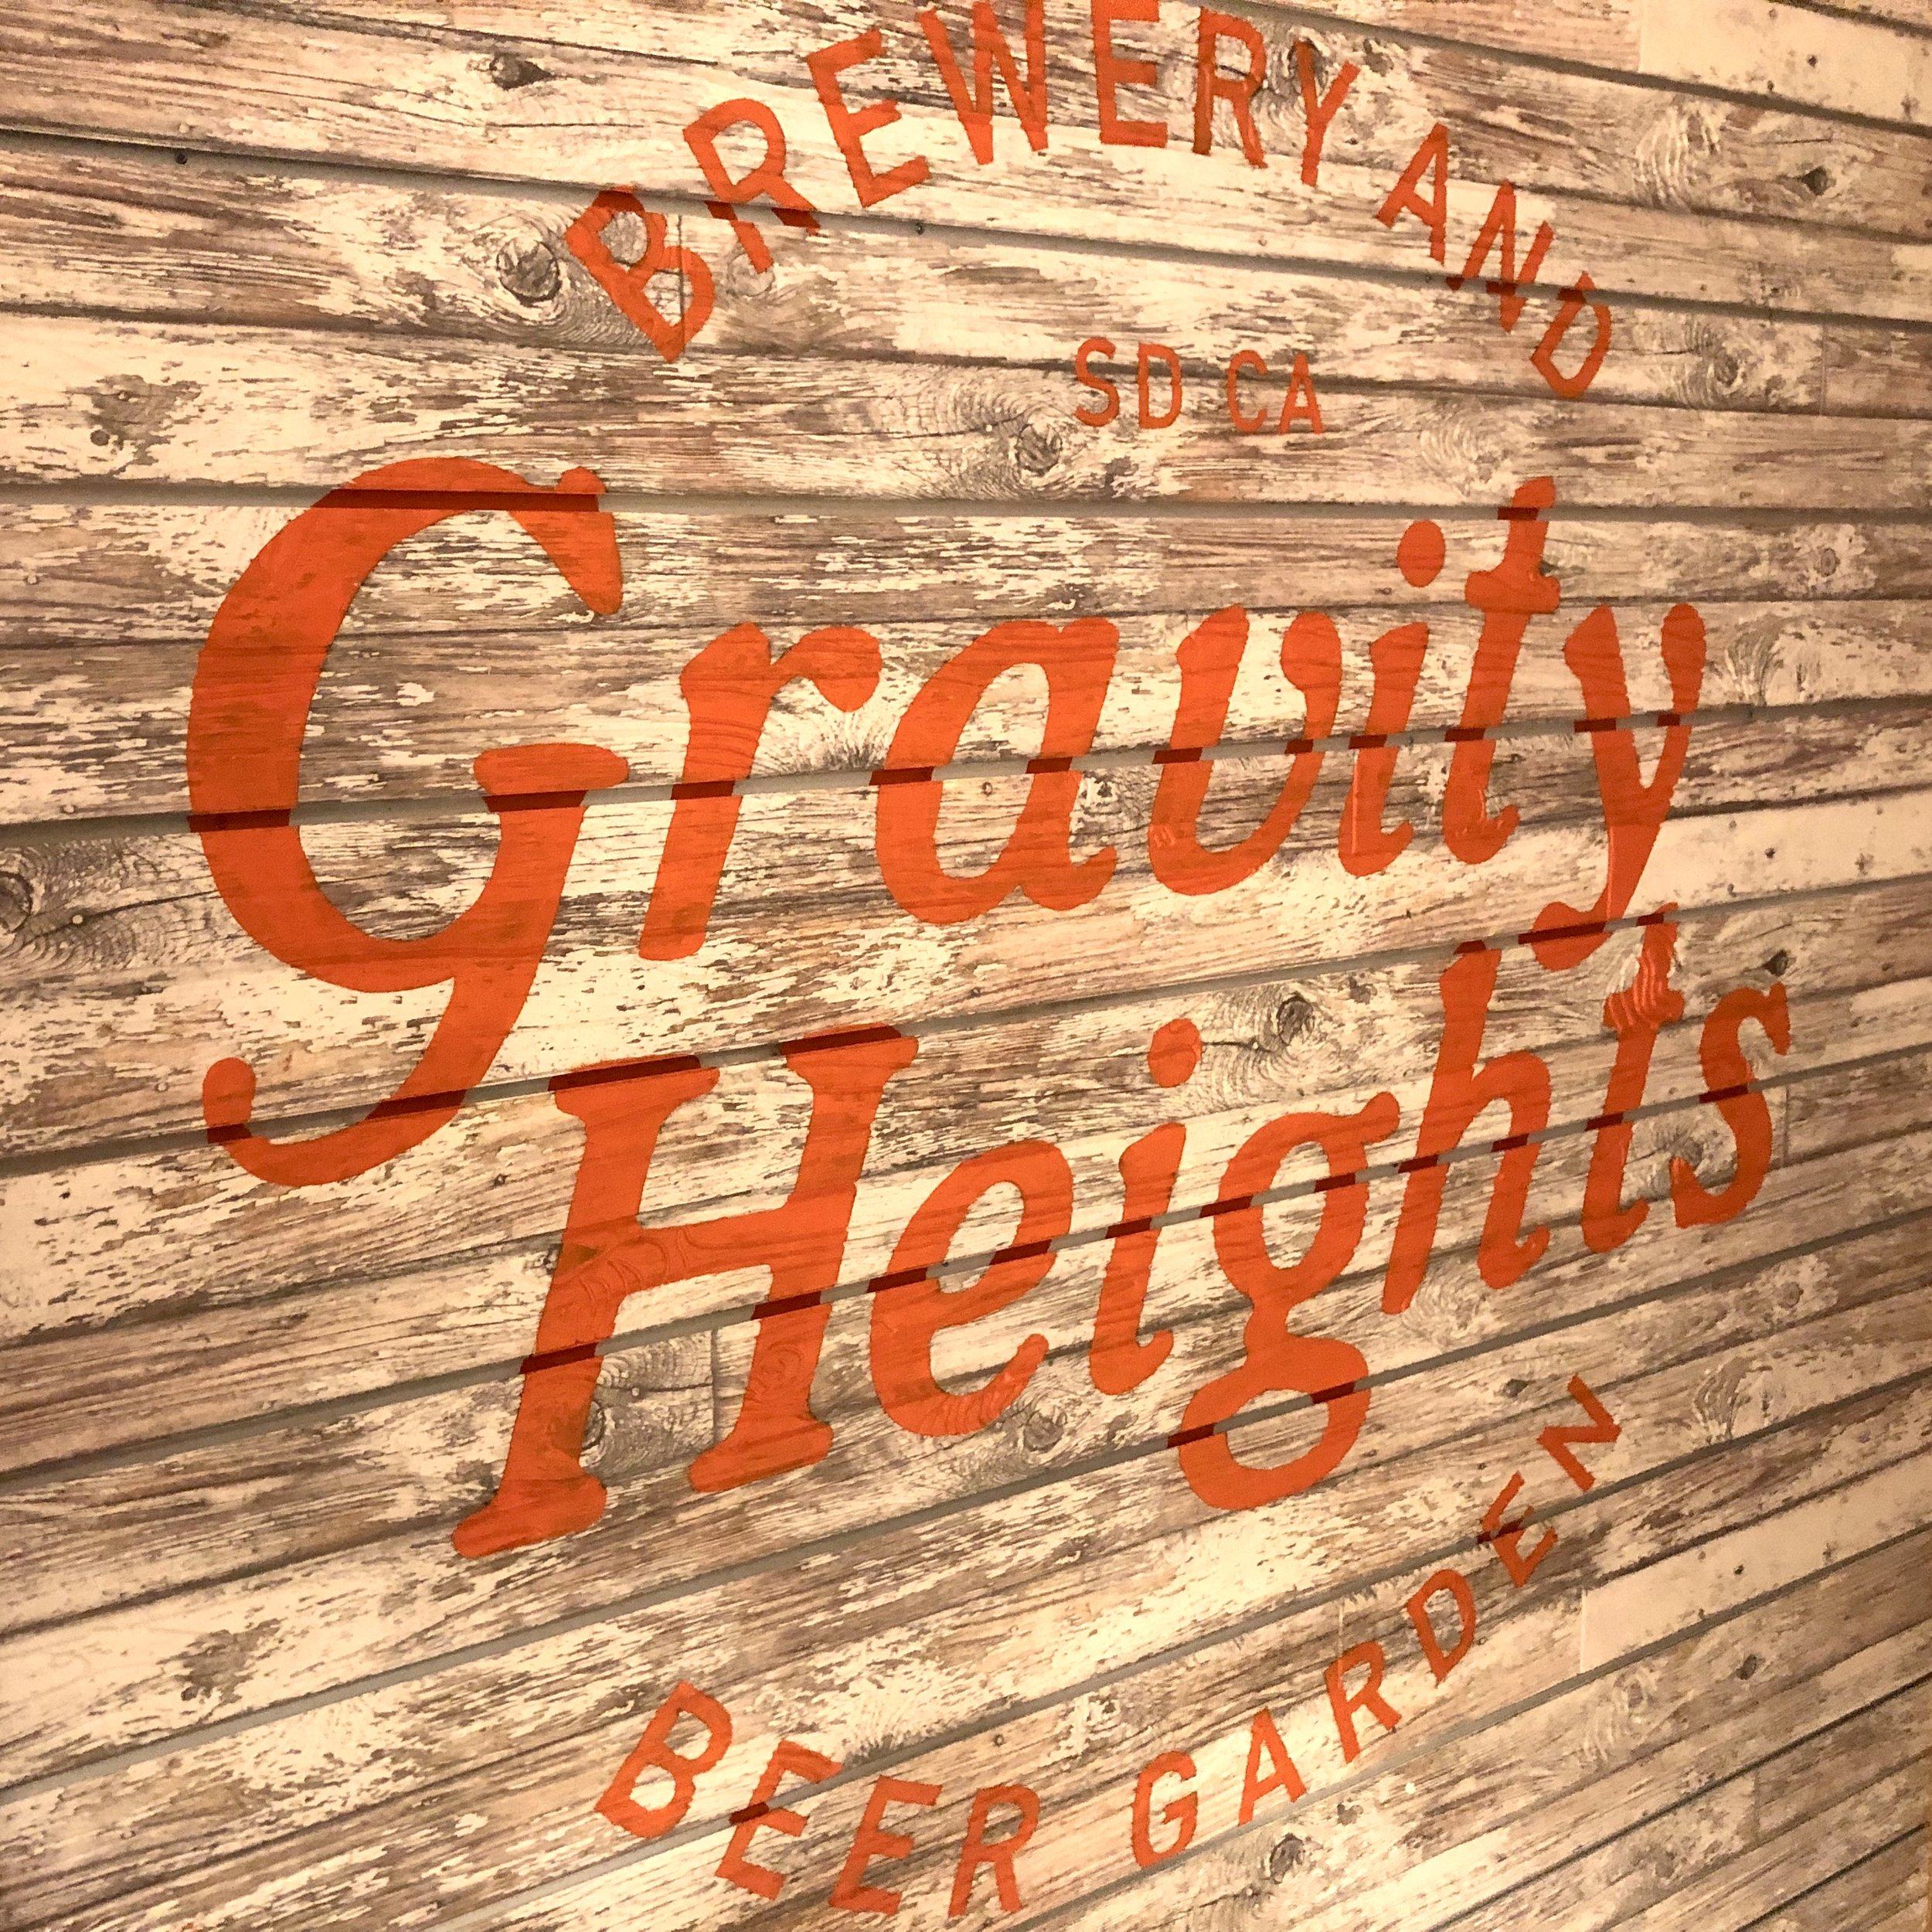 Gravity Heights Brewery San Diego hand painted branding wall graphic mural